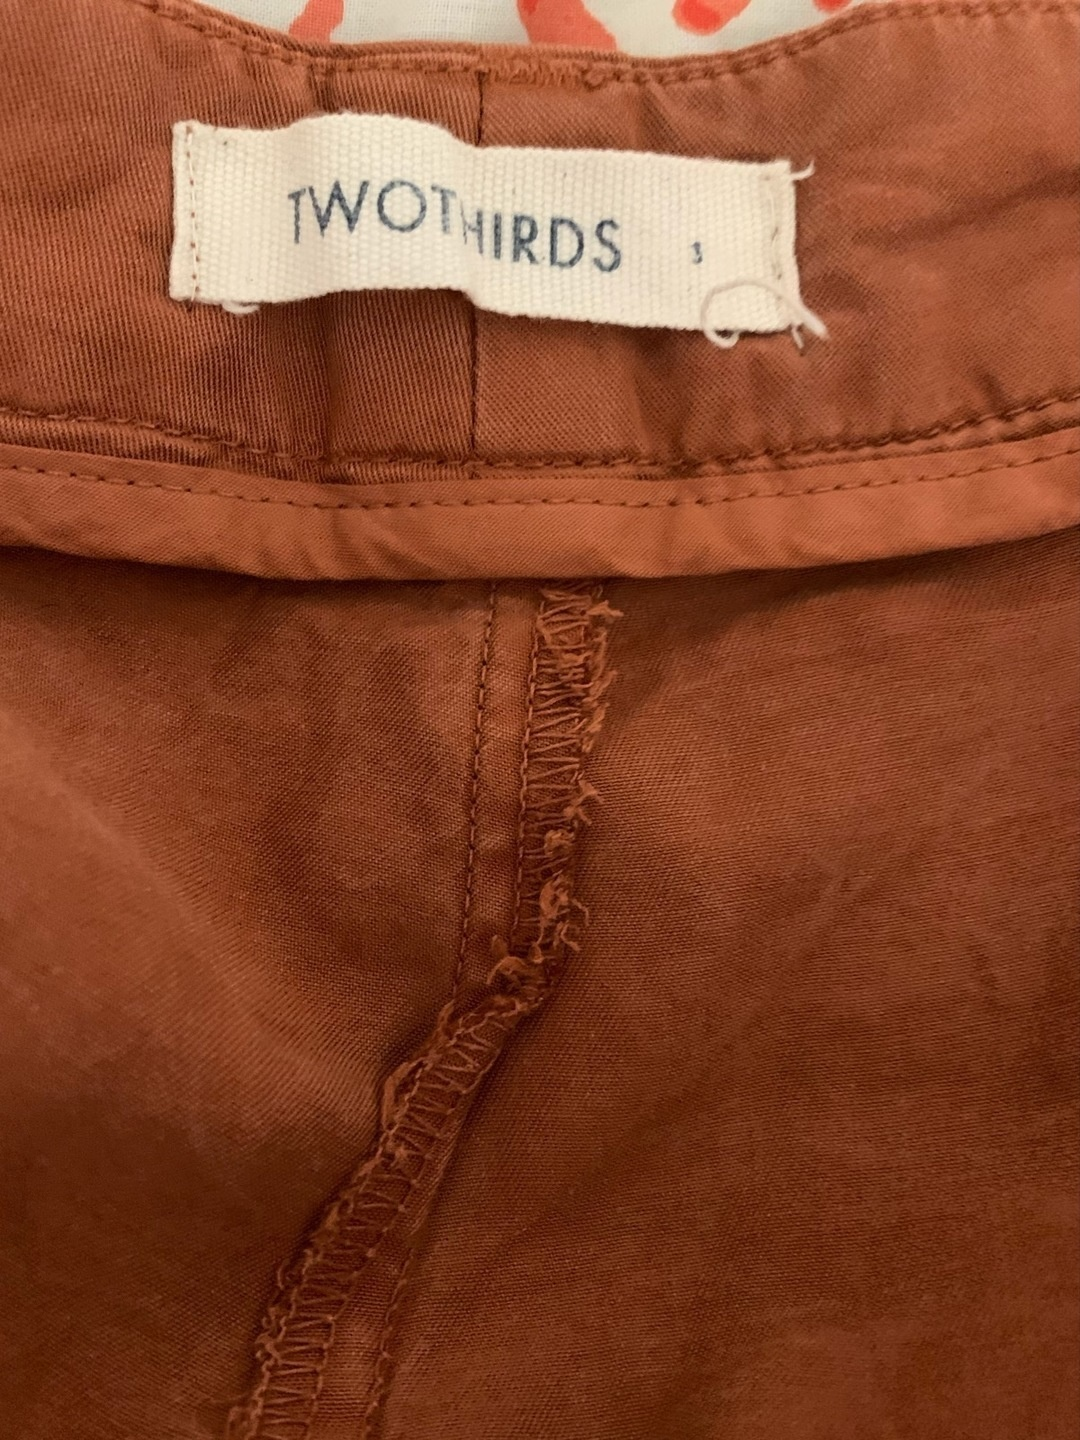 Women's trousers & jeans - TWOTHIRDS photo 4